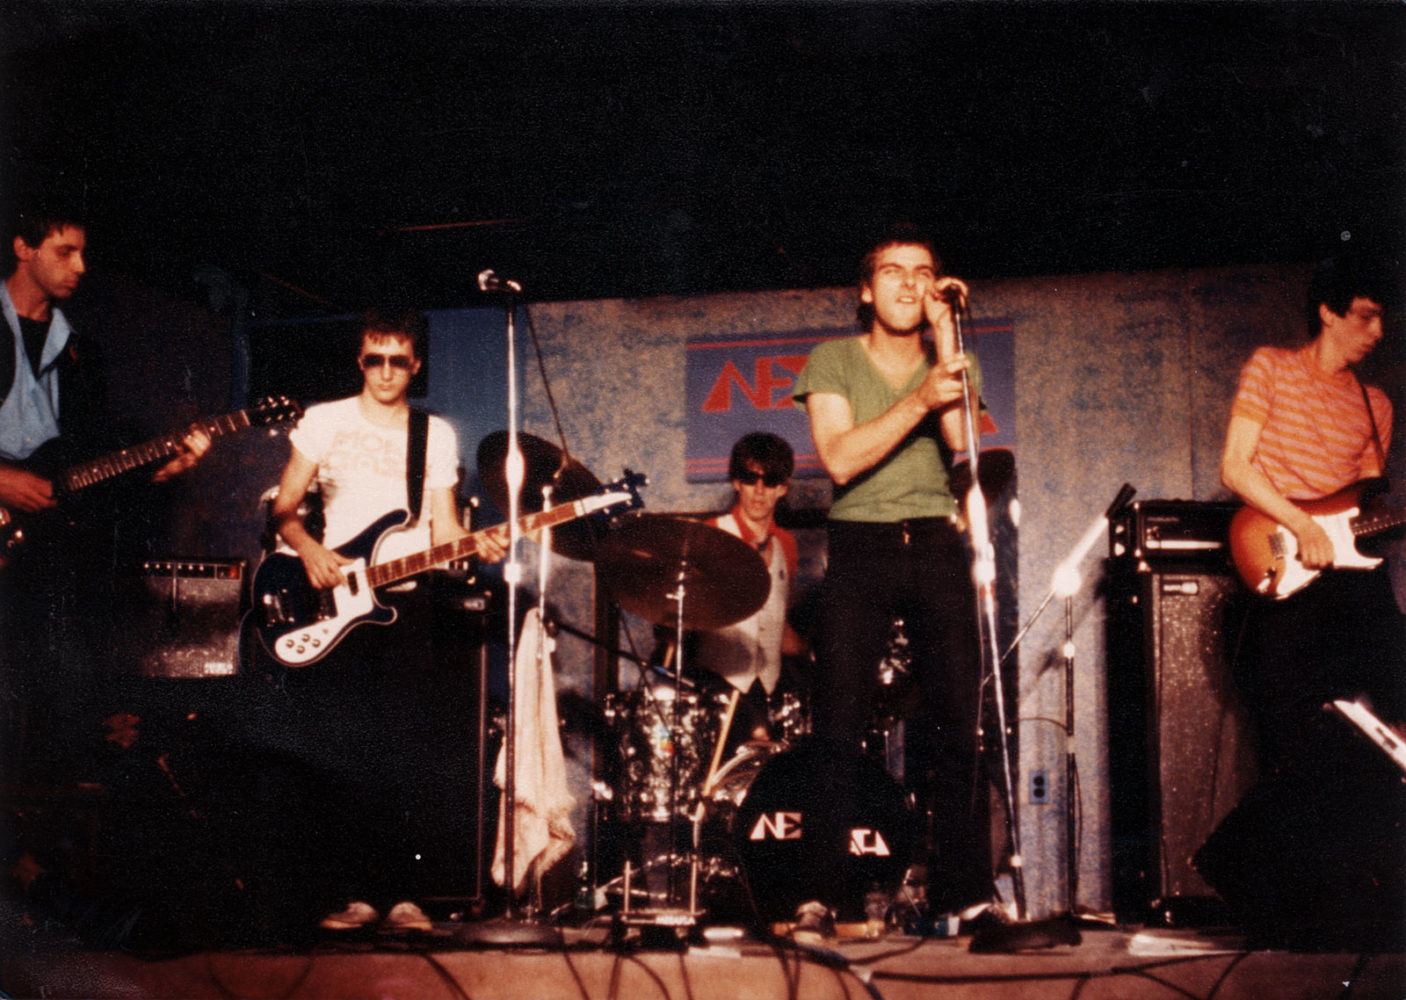 New Math performing at the Orange Monkey in 1977. Robert Slide - bass, Gary Trainer - guitar, Paul Dodd - drums, Kevin Patrick - vocals, Dale Mincey - guitar